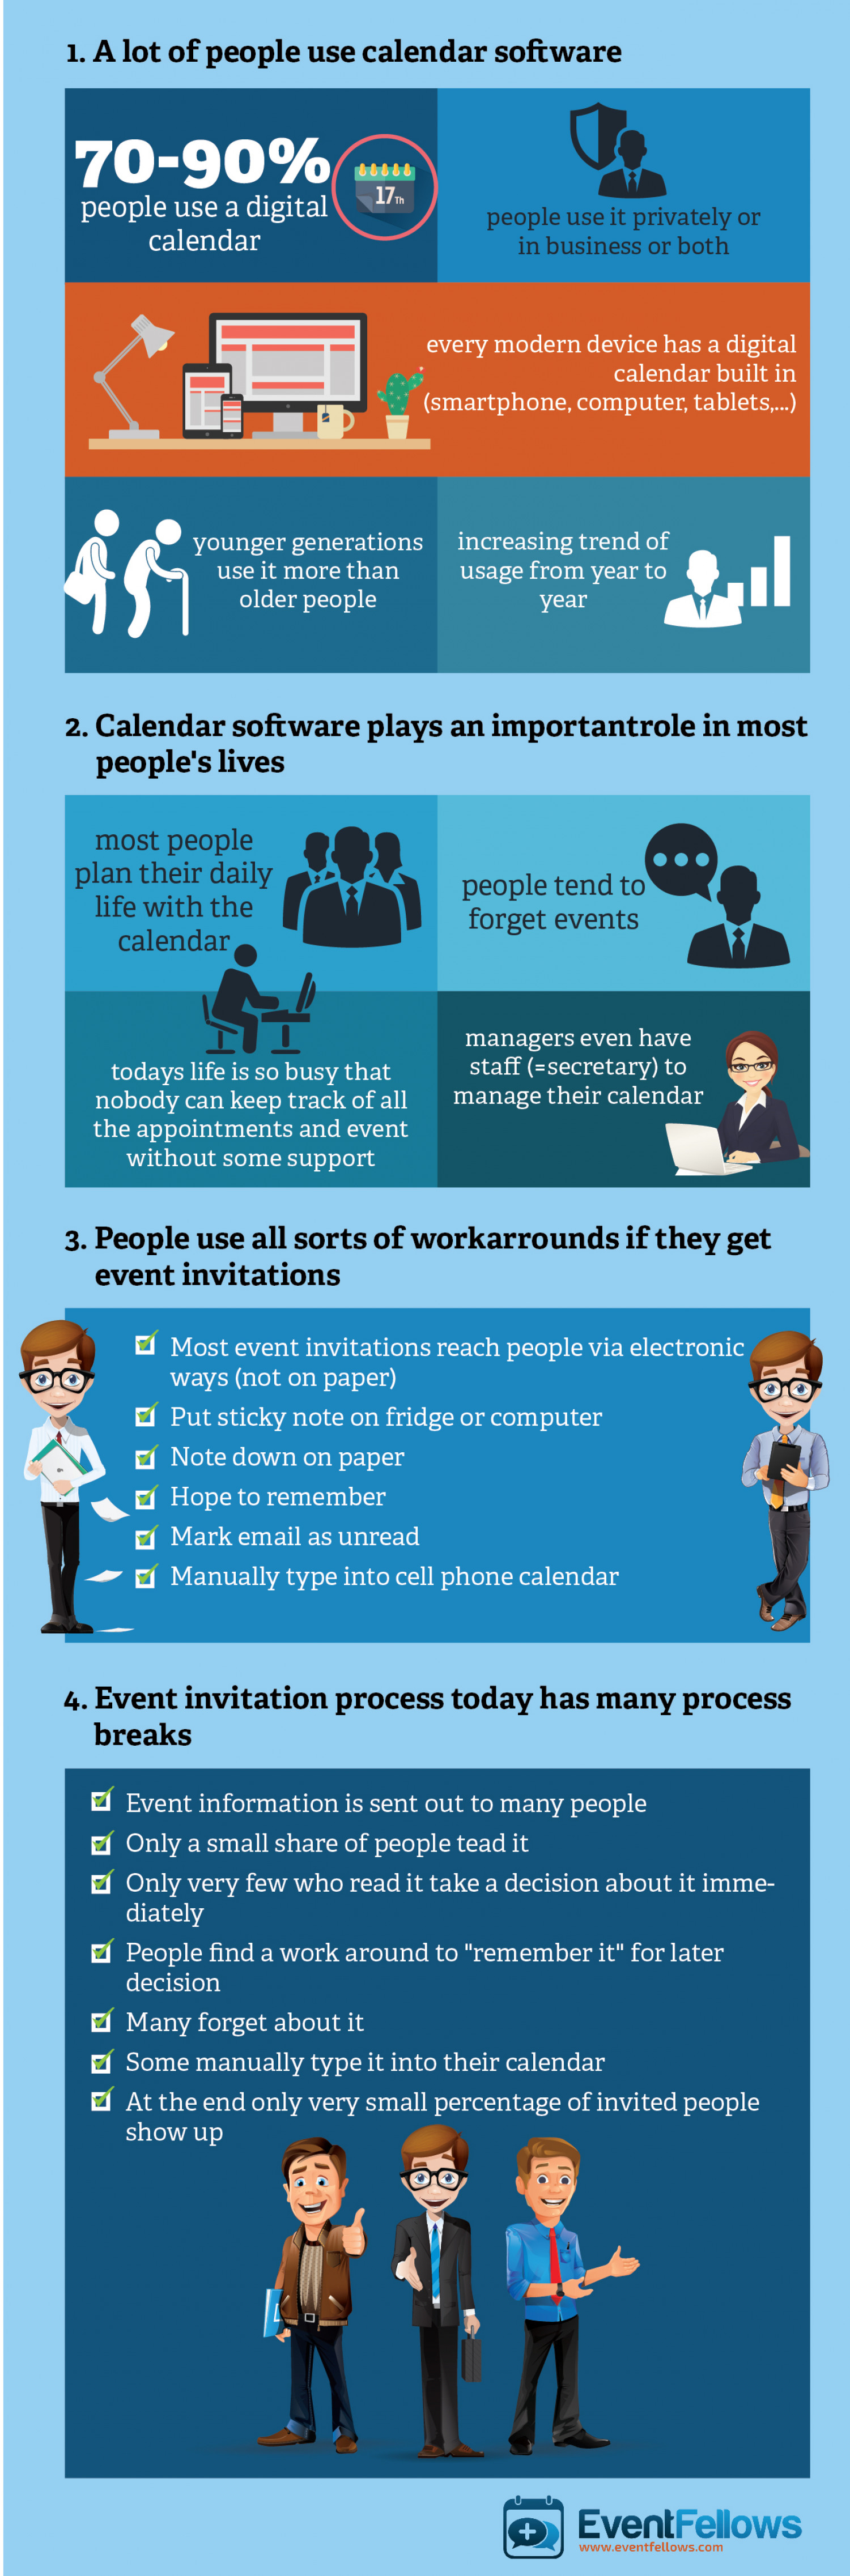 A lot of People Use Calendar Software Infographic